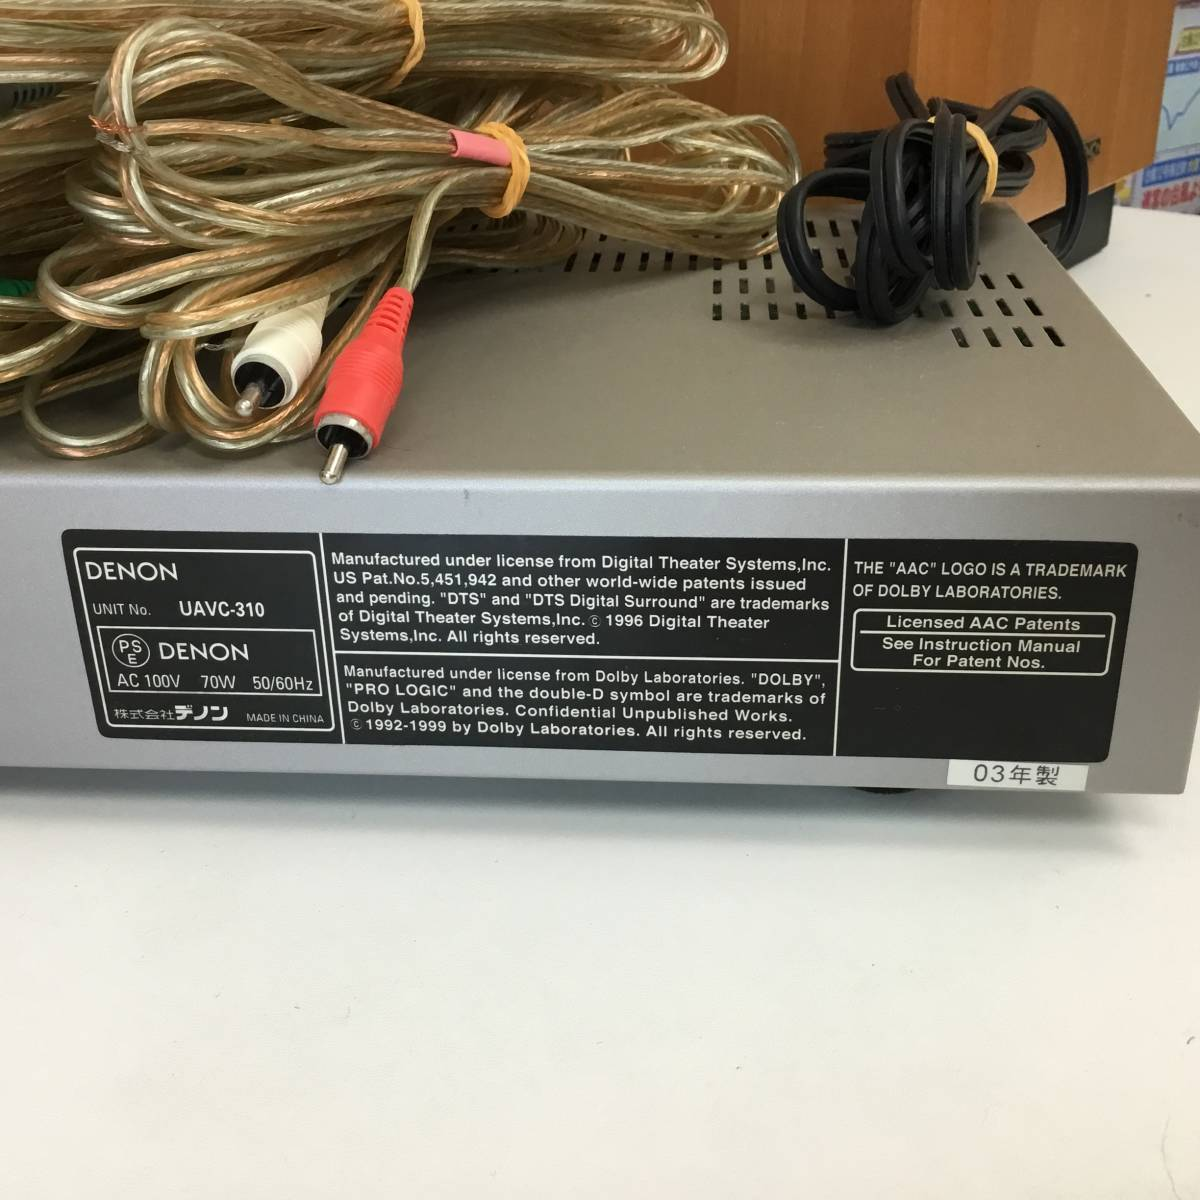 Denon Dht 310 51ch Home Theater Surround System Amplifier Aac Unit Wiring Uavc